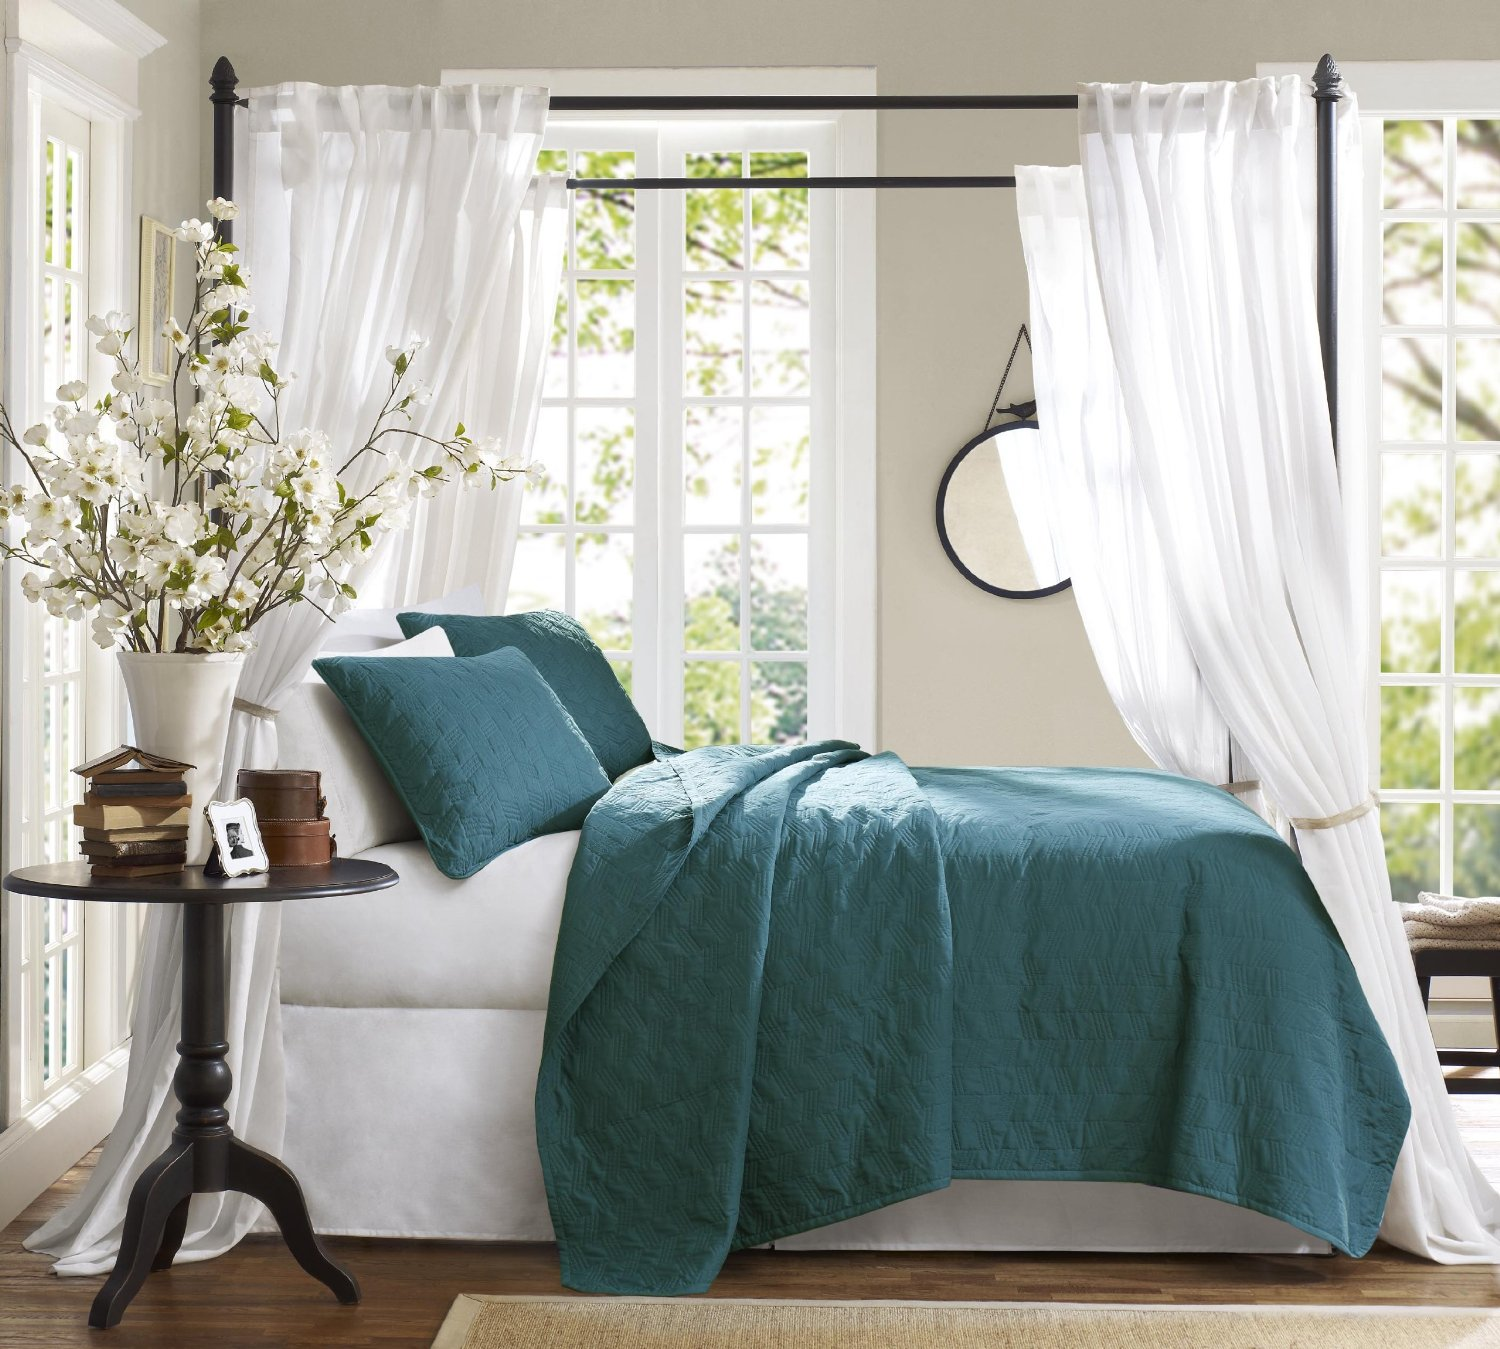 Peacock Feather Bedding Set | Peacock Bedding | Peacock Themed Bedding